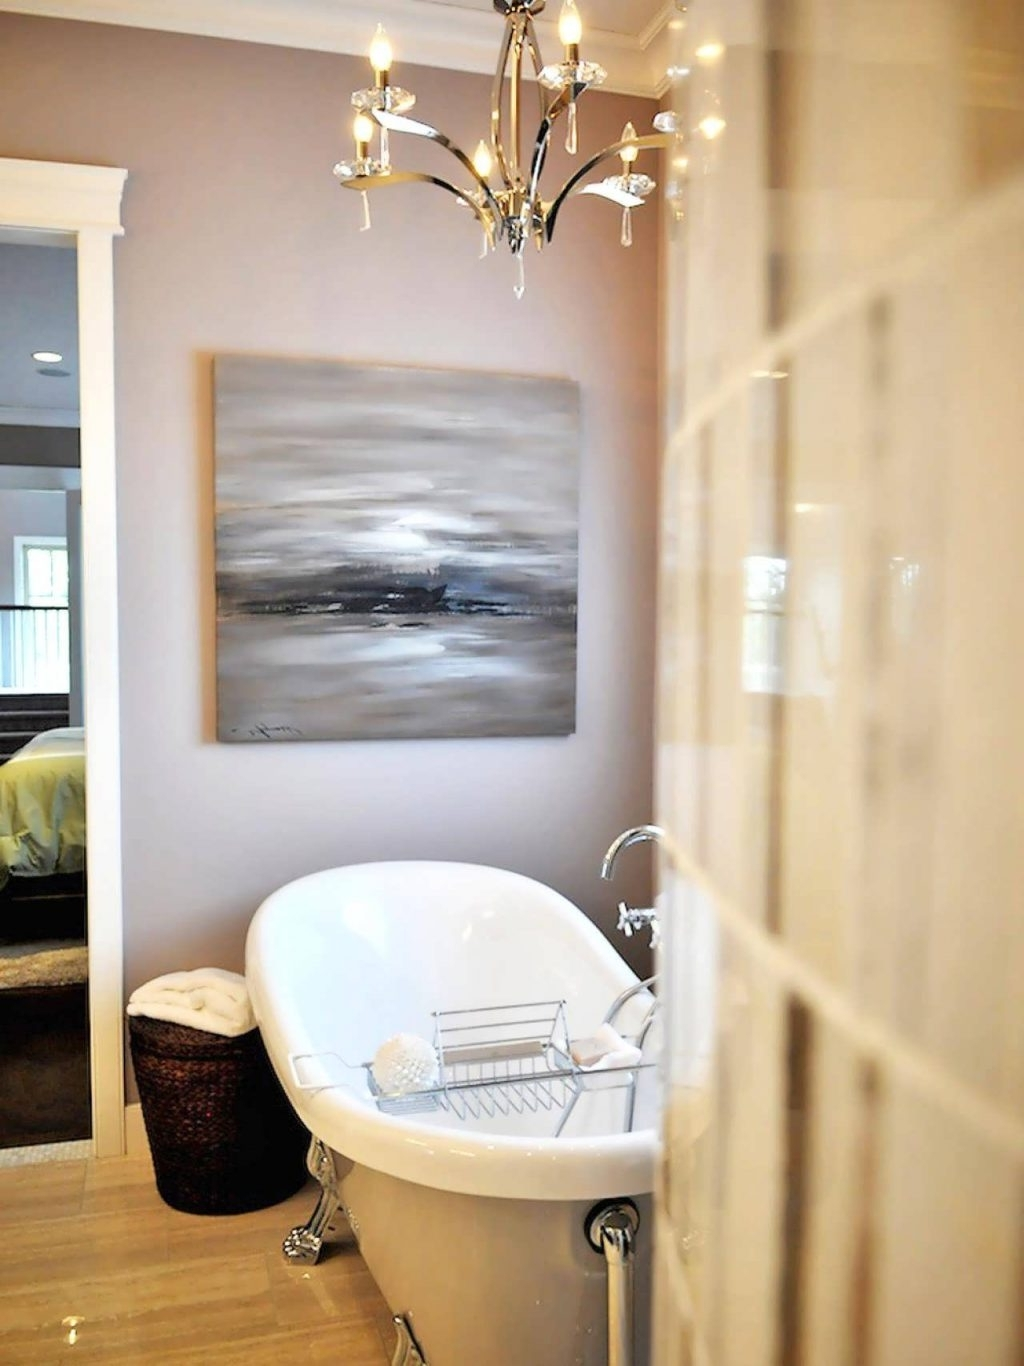 Bathroom Chandelier Lighting Ideas Modern Chandeliers In Small For Most Up To Date Bathroom Chandelier Lighting (View 2 of 15)